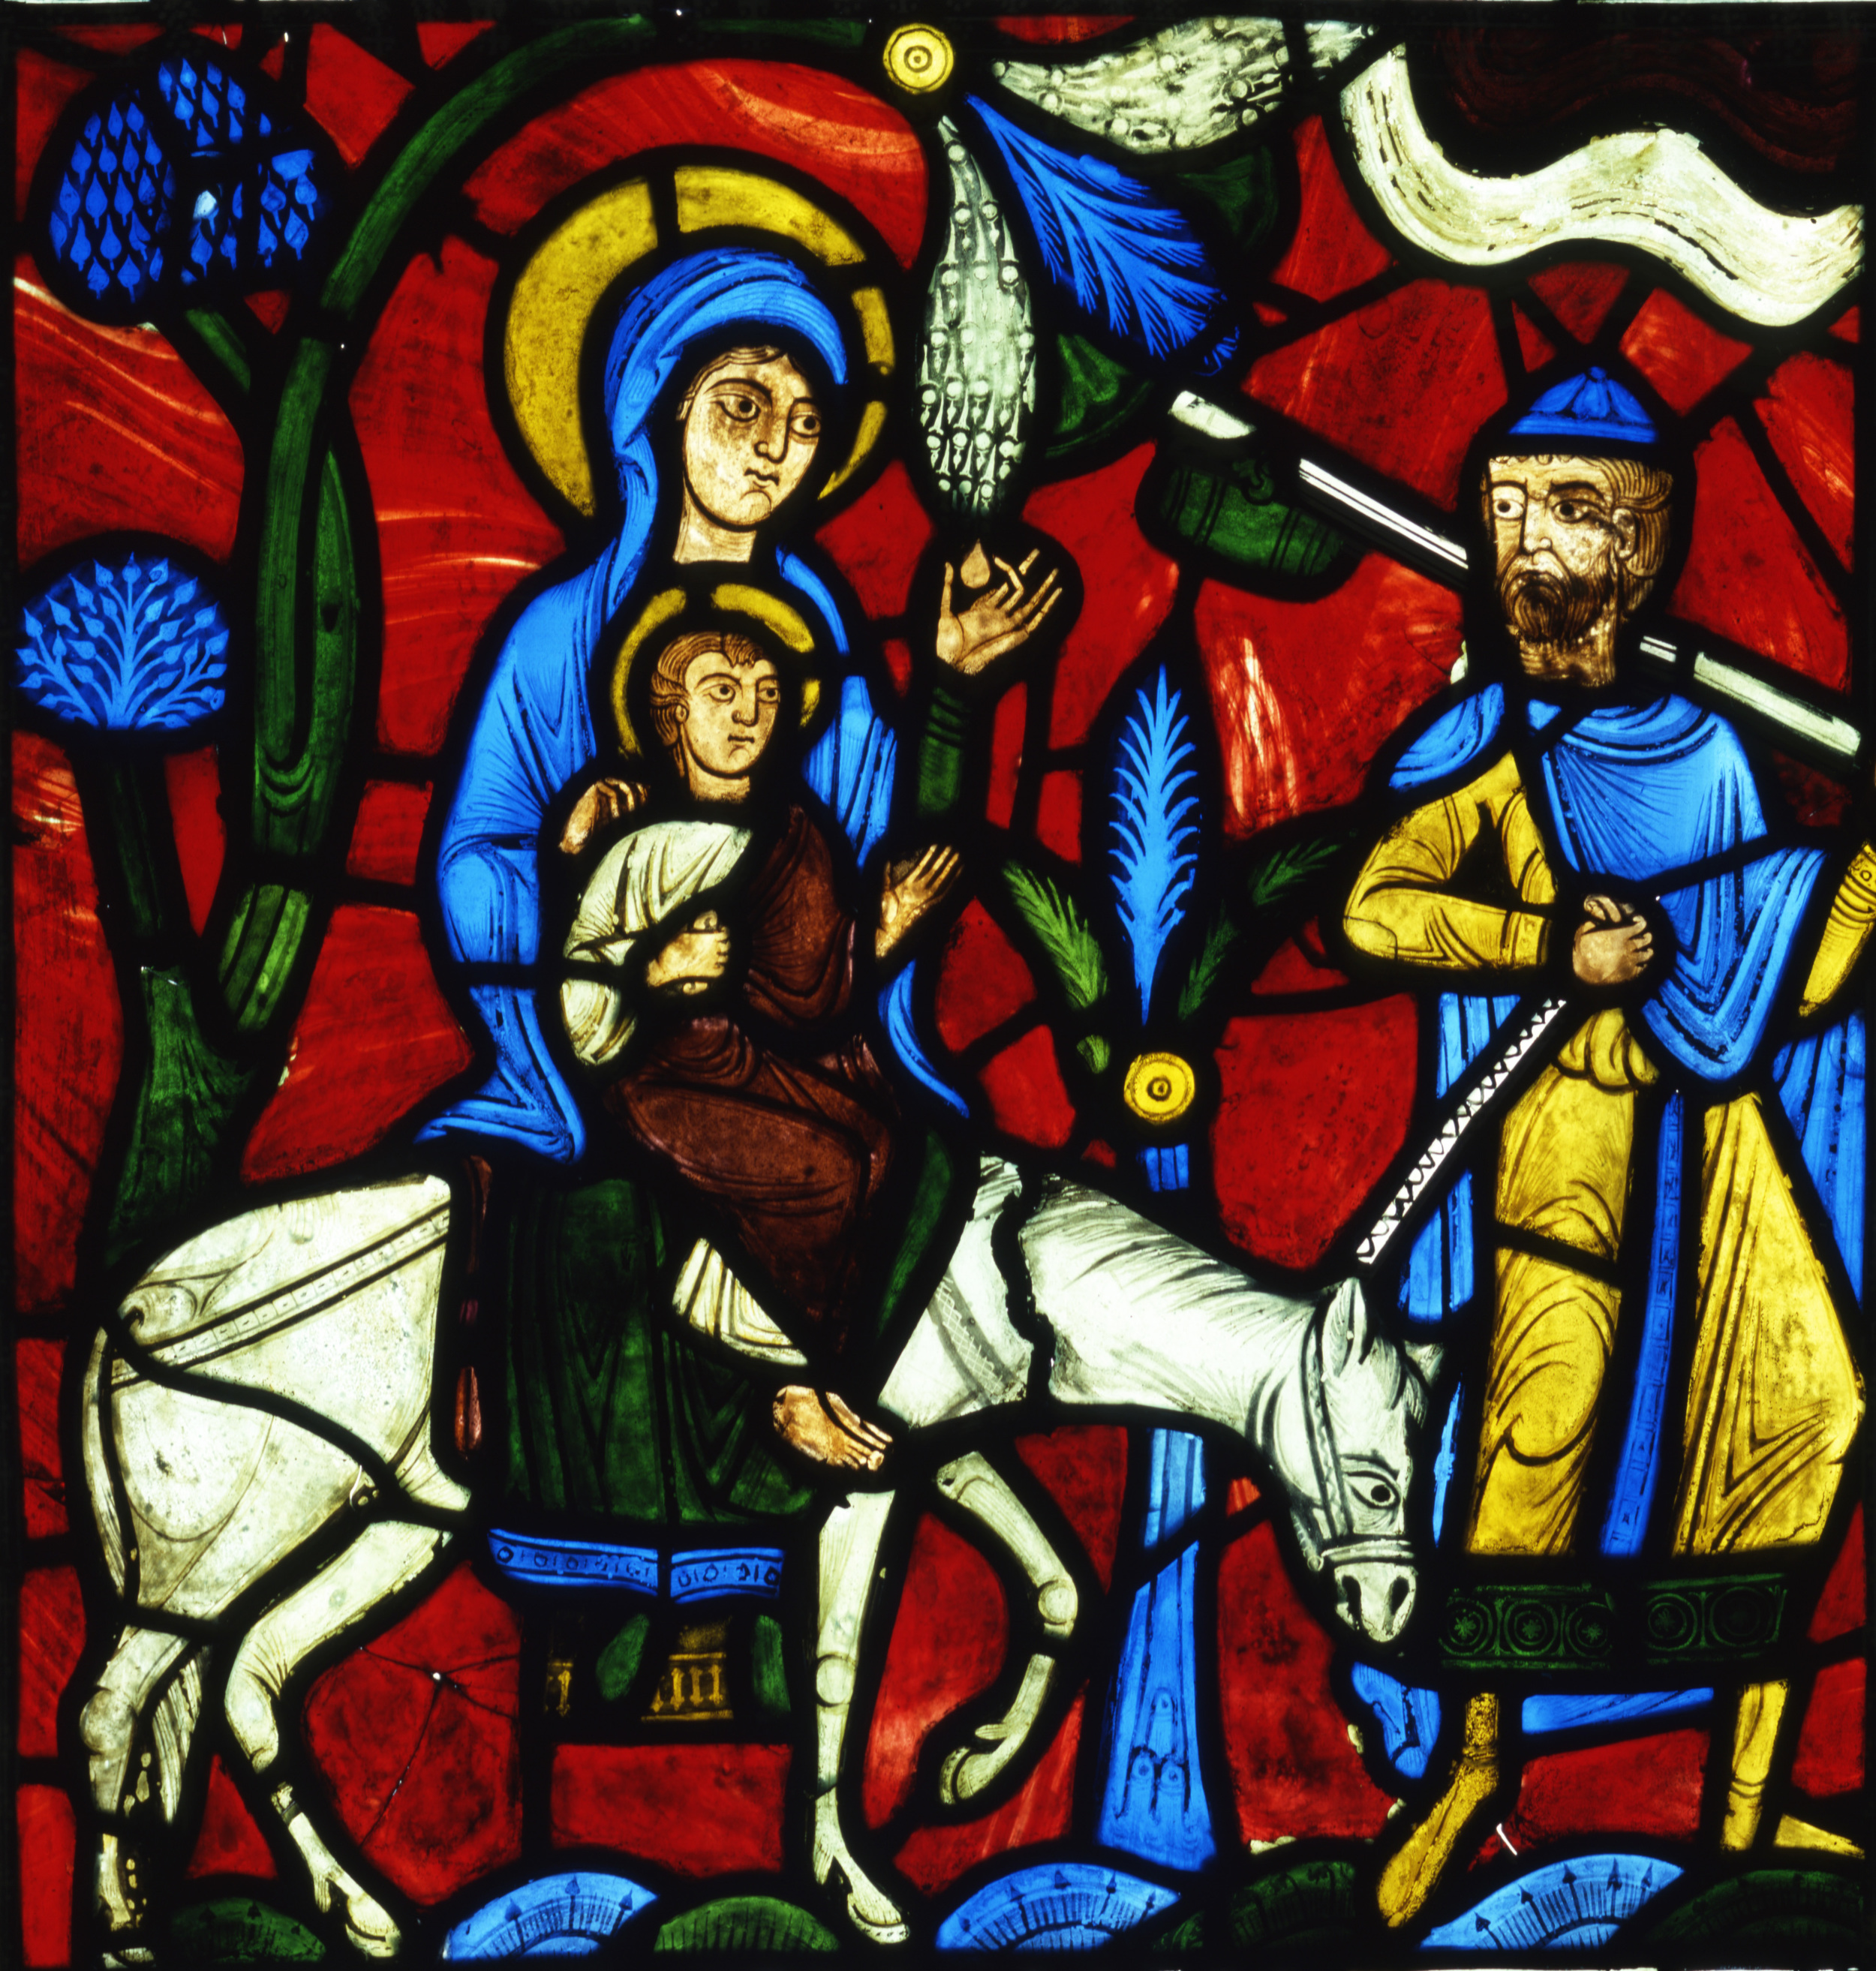 The Flight into Egypt, from the Infancy of Christ Window. Pot-metal glass. France, Abbey of Saint-Denis (near Paris), circa 1145. This stained glass panel depicts a legend surrounding the story of the Flight into Egypt. The biblical story from the Gospel of Matthew describes how Joseph was commanded in a dream to escape from Herod with Mary and the baby Jesus to Egypt. The legend from Pseudo-Matthew shown in this panel, not told in the Gospels, tells of a moment on the journey when Mary is weary and in need of food. Jesus commands the palm tree to bend down so his mother can pluck the fruit. Collection of Glencairn Museum (03.SG.114).